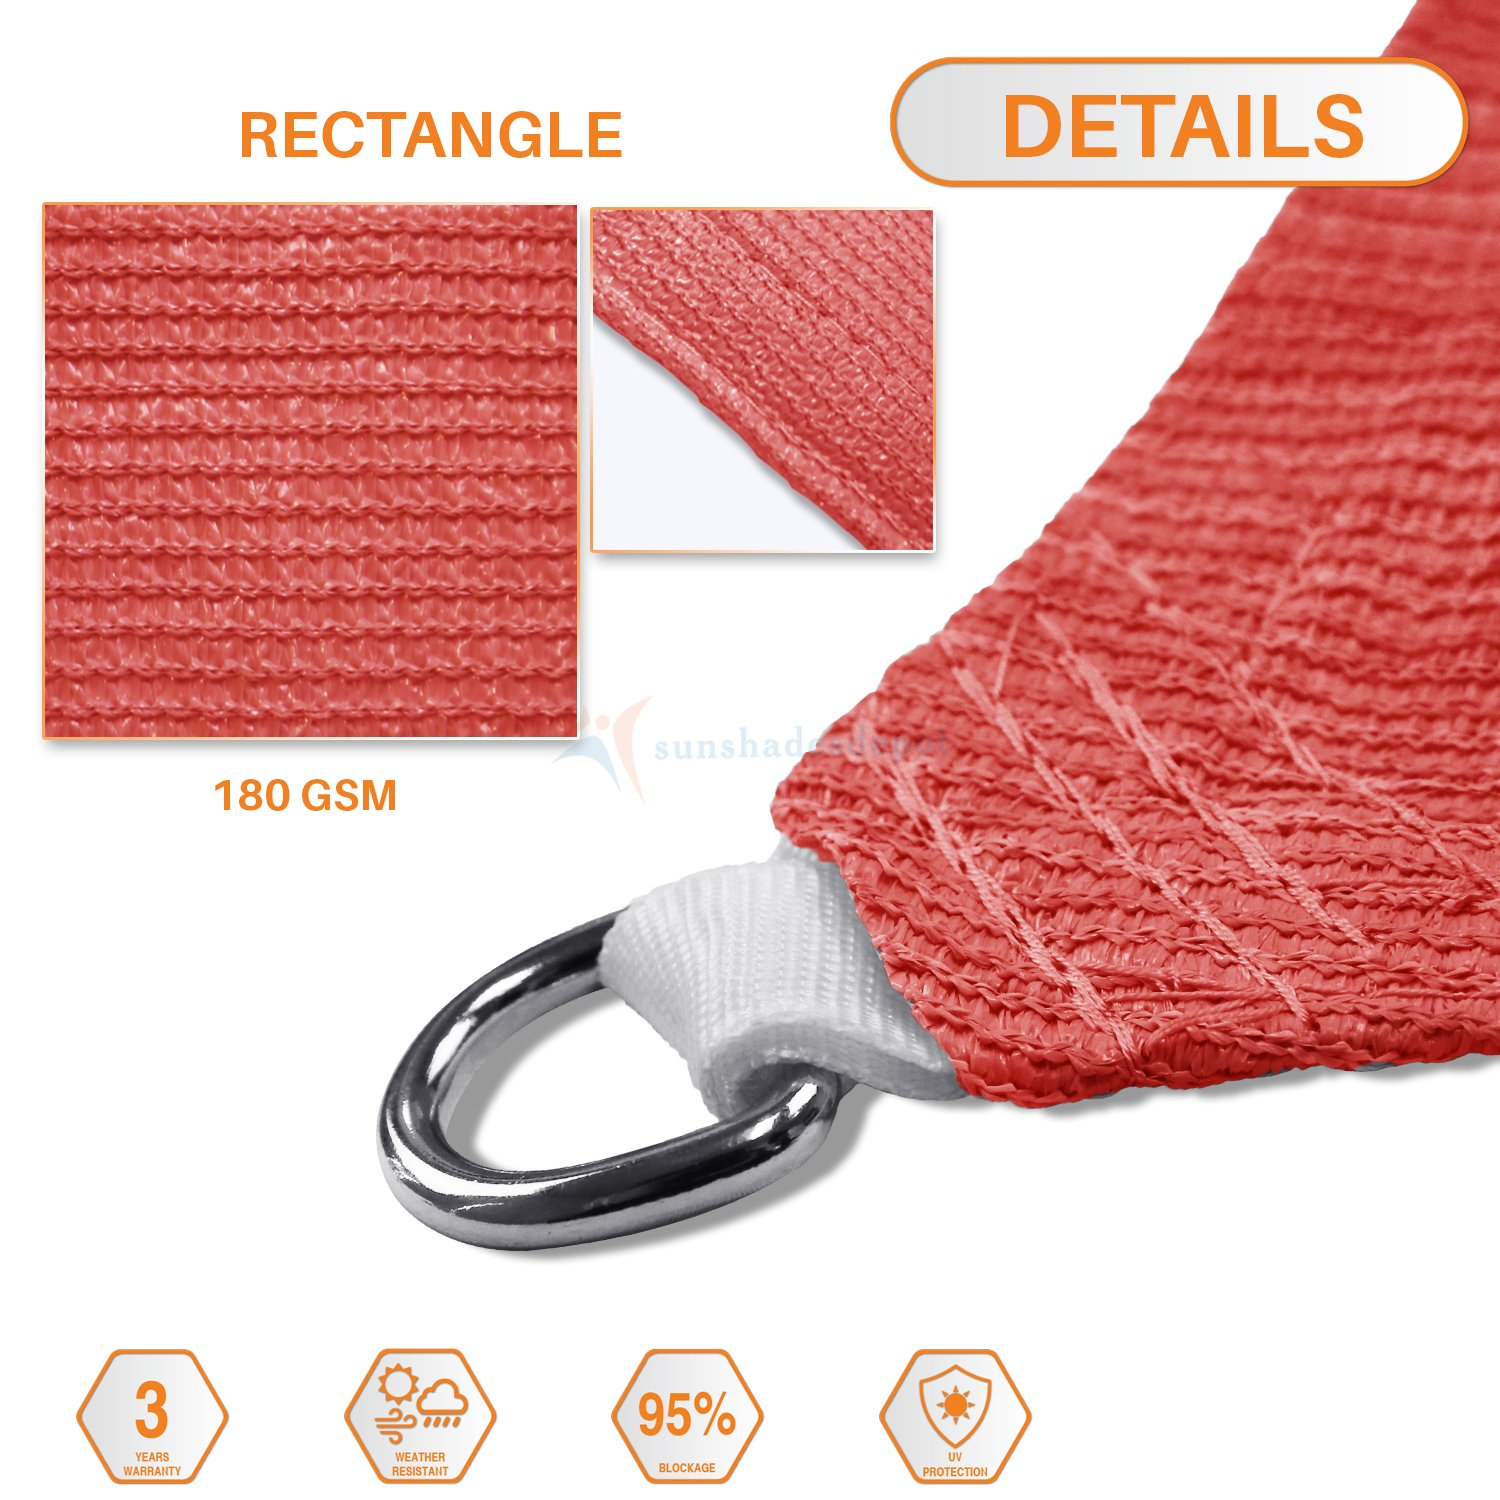 TANG Sunshades Depot 12 x 12 Sun Shade Sail Square 180 GSM HDPE Permeable Curved Edge Canopy Red Custom Commercial Grade Standard